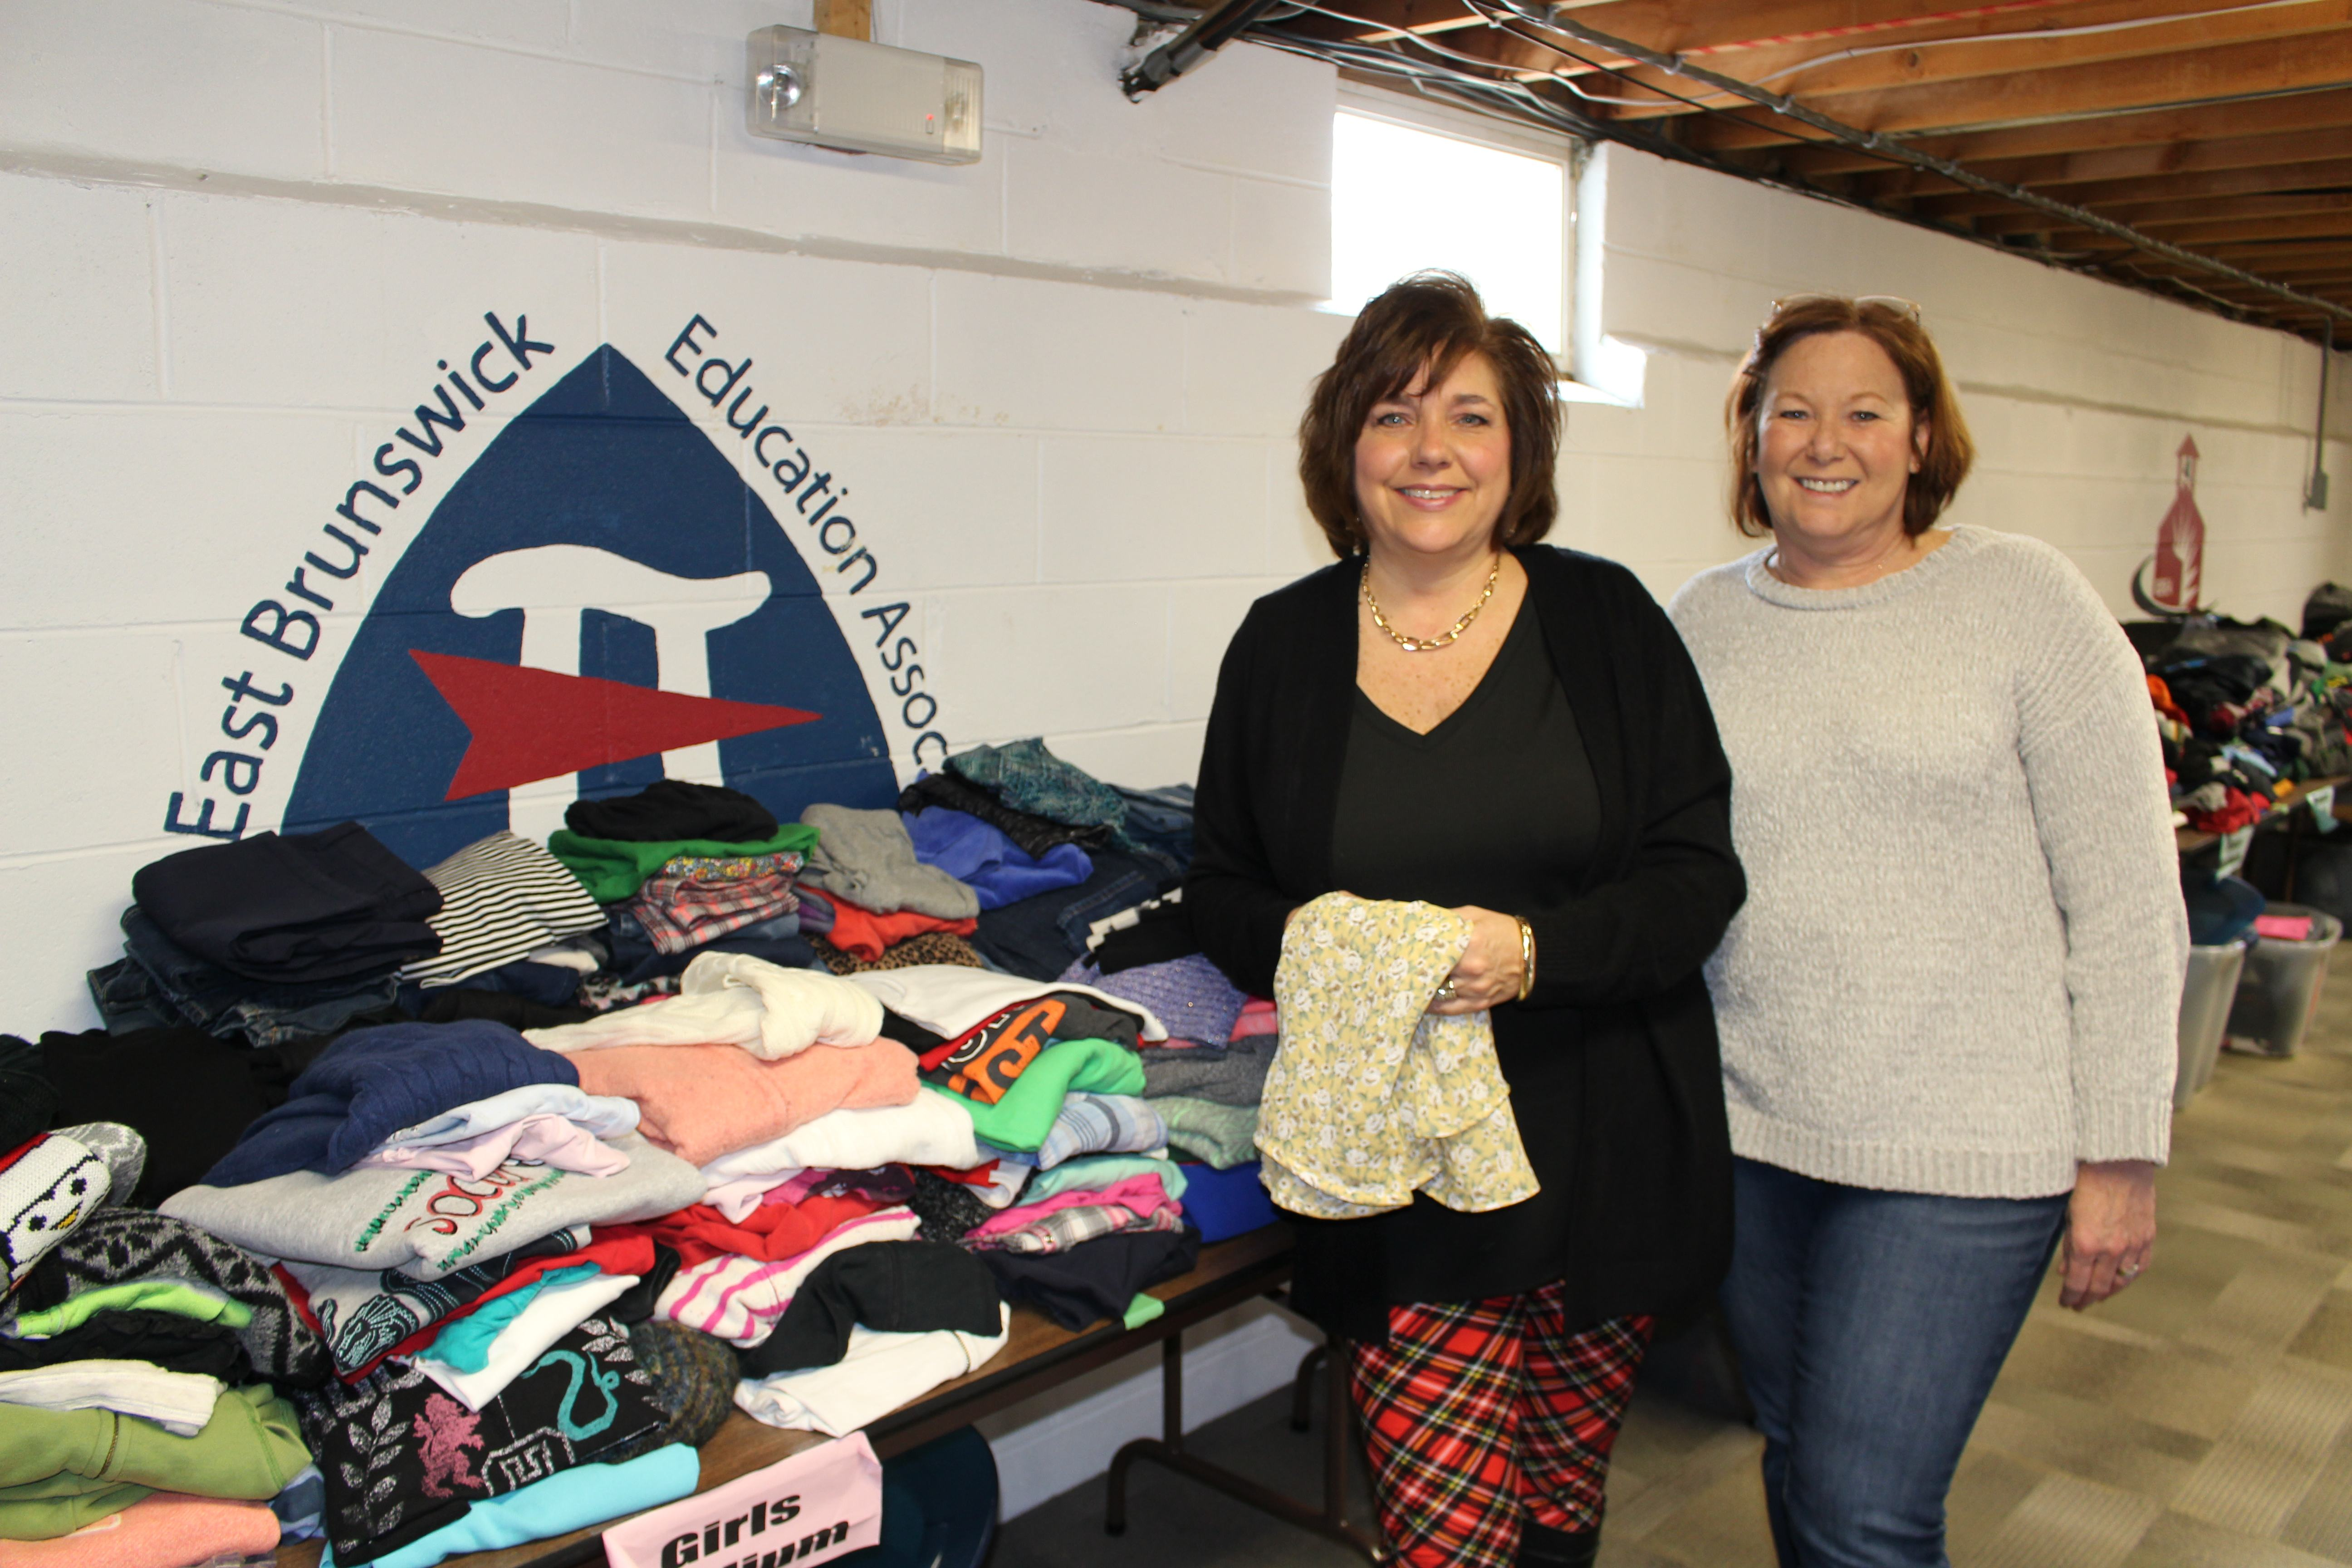 a0c50c22af2 EBEA President Dana Zimbicki and EBEA member JoAnn Peterson sort clothing  in The Bear s Den